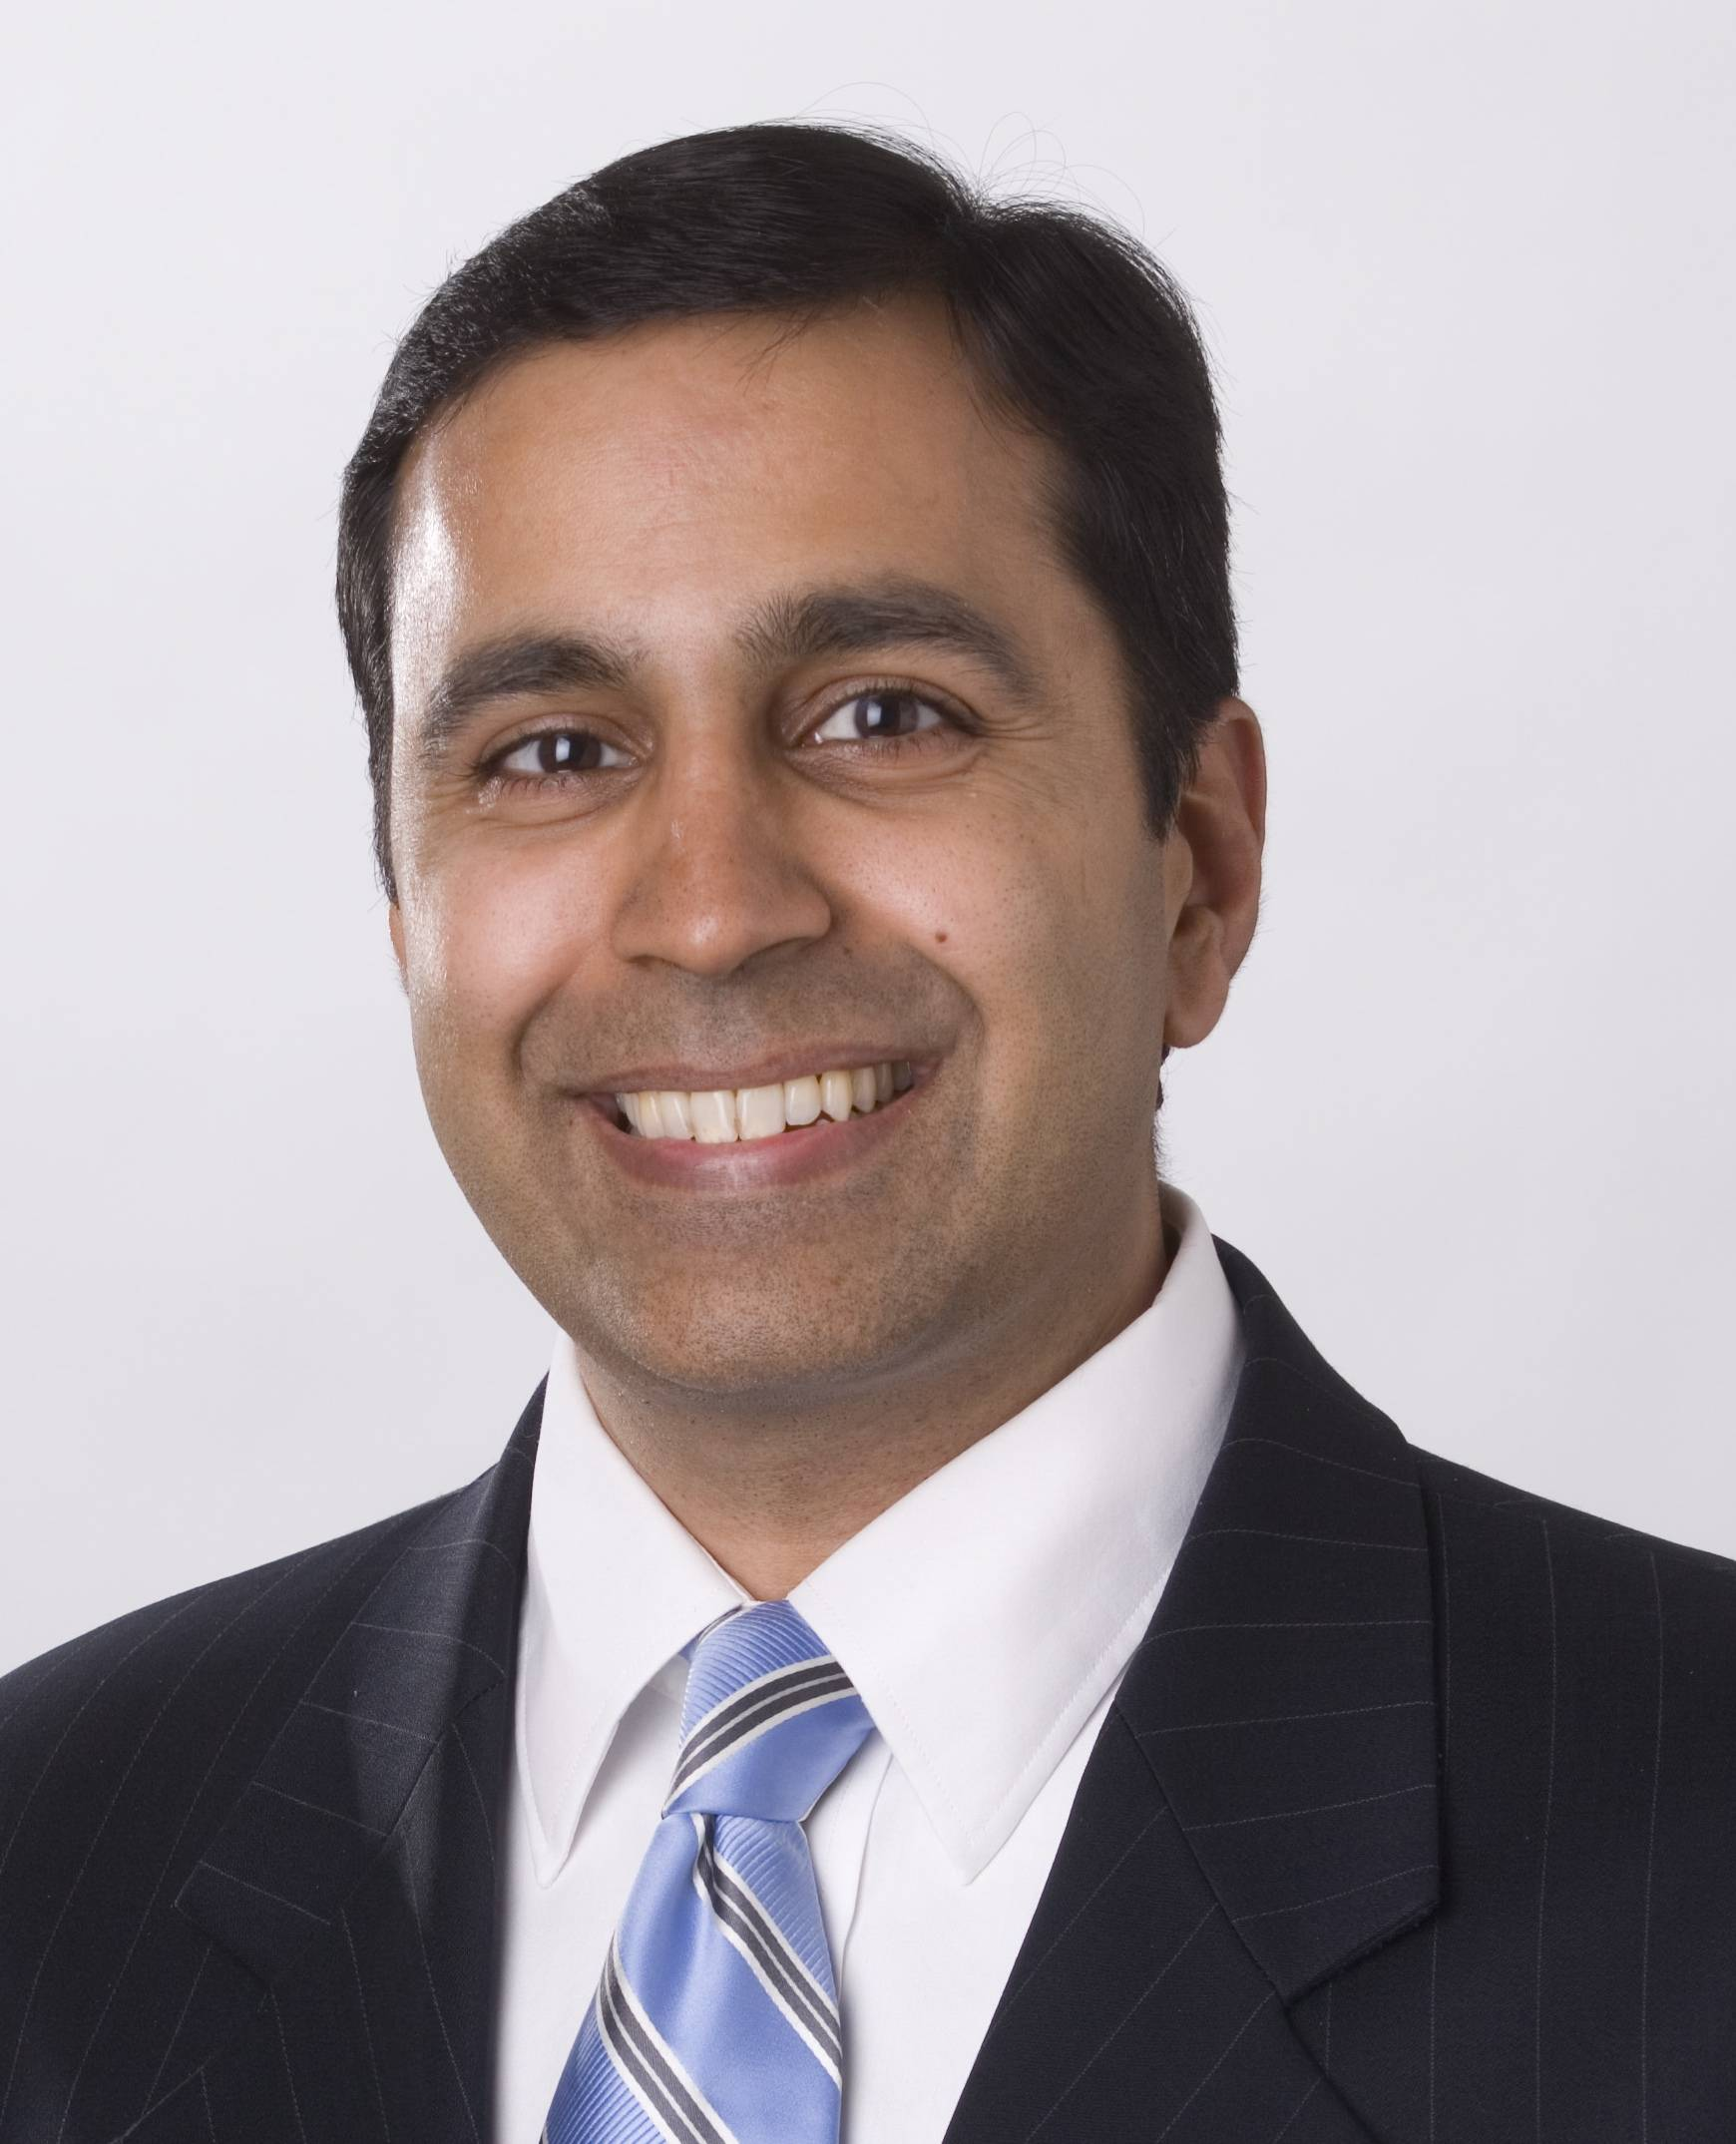 Raja Krishnamoorthi, running for 8th District U.S. Representative